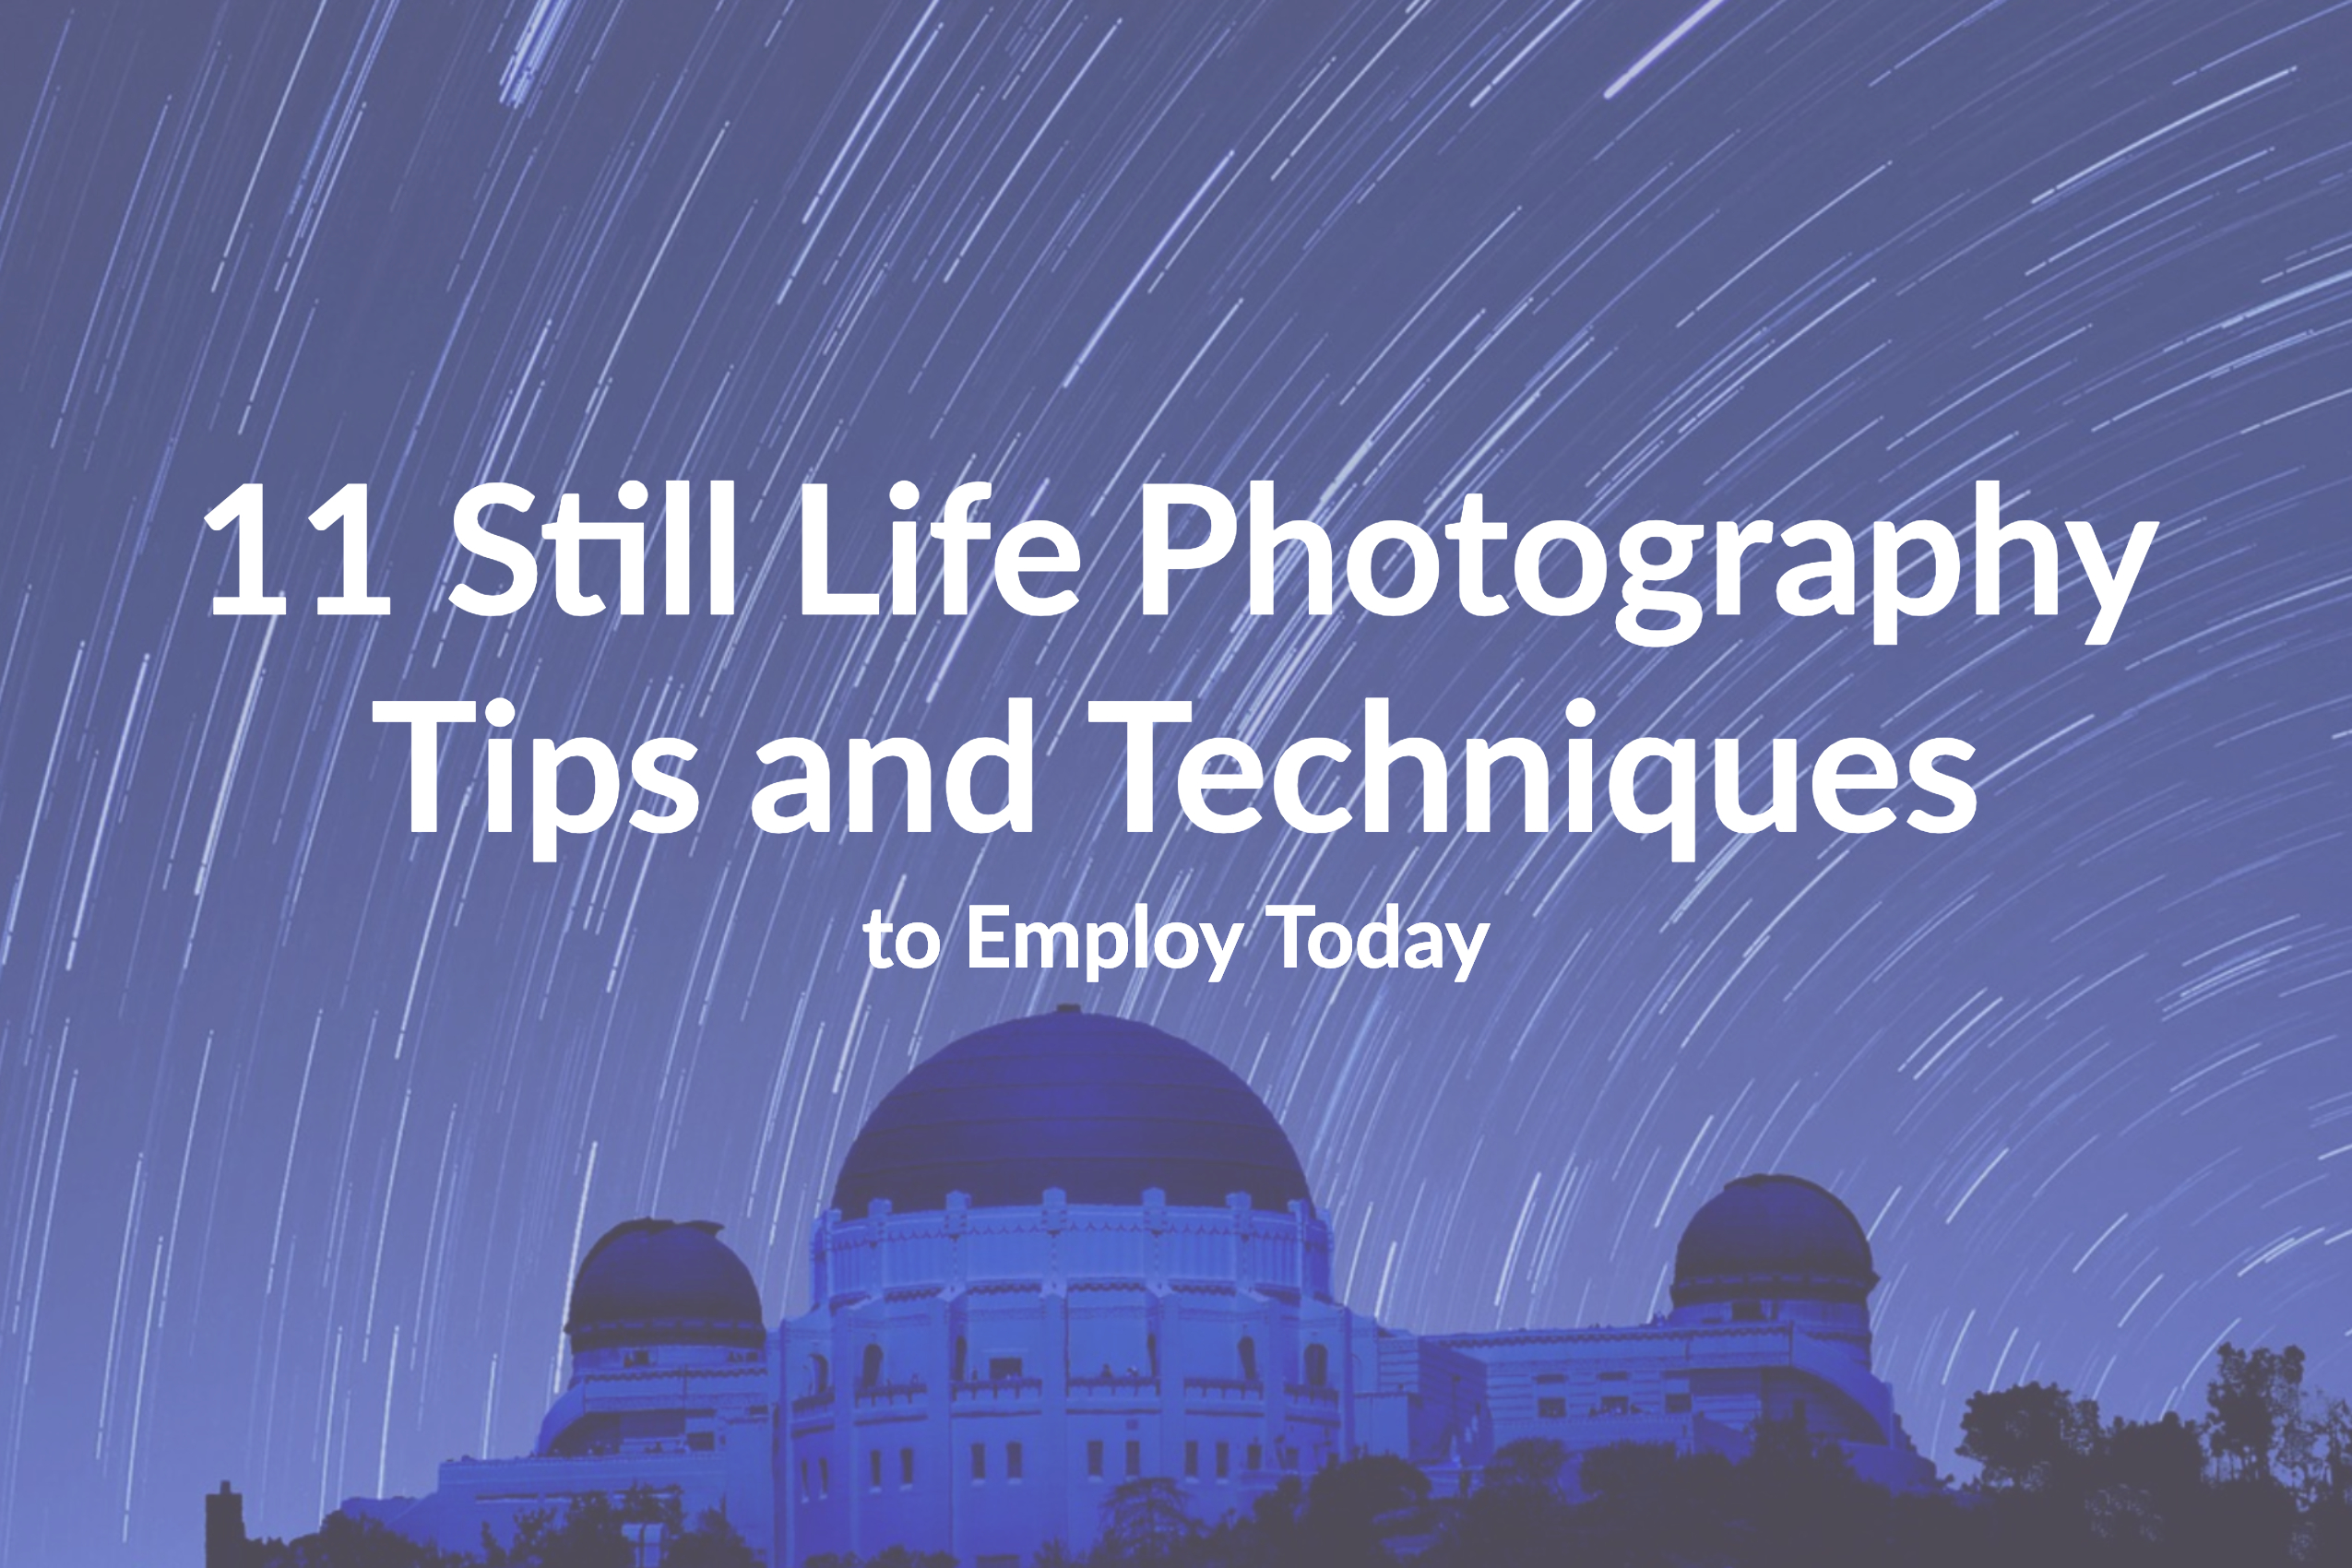 11 Still Life Photography Tips and Techniques to Employ Today